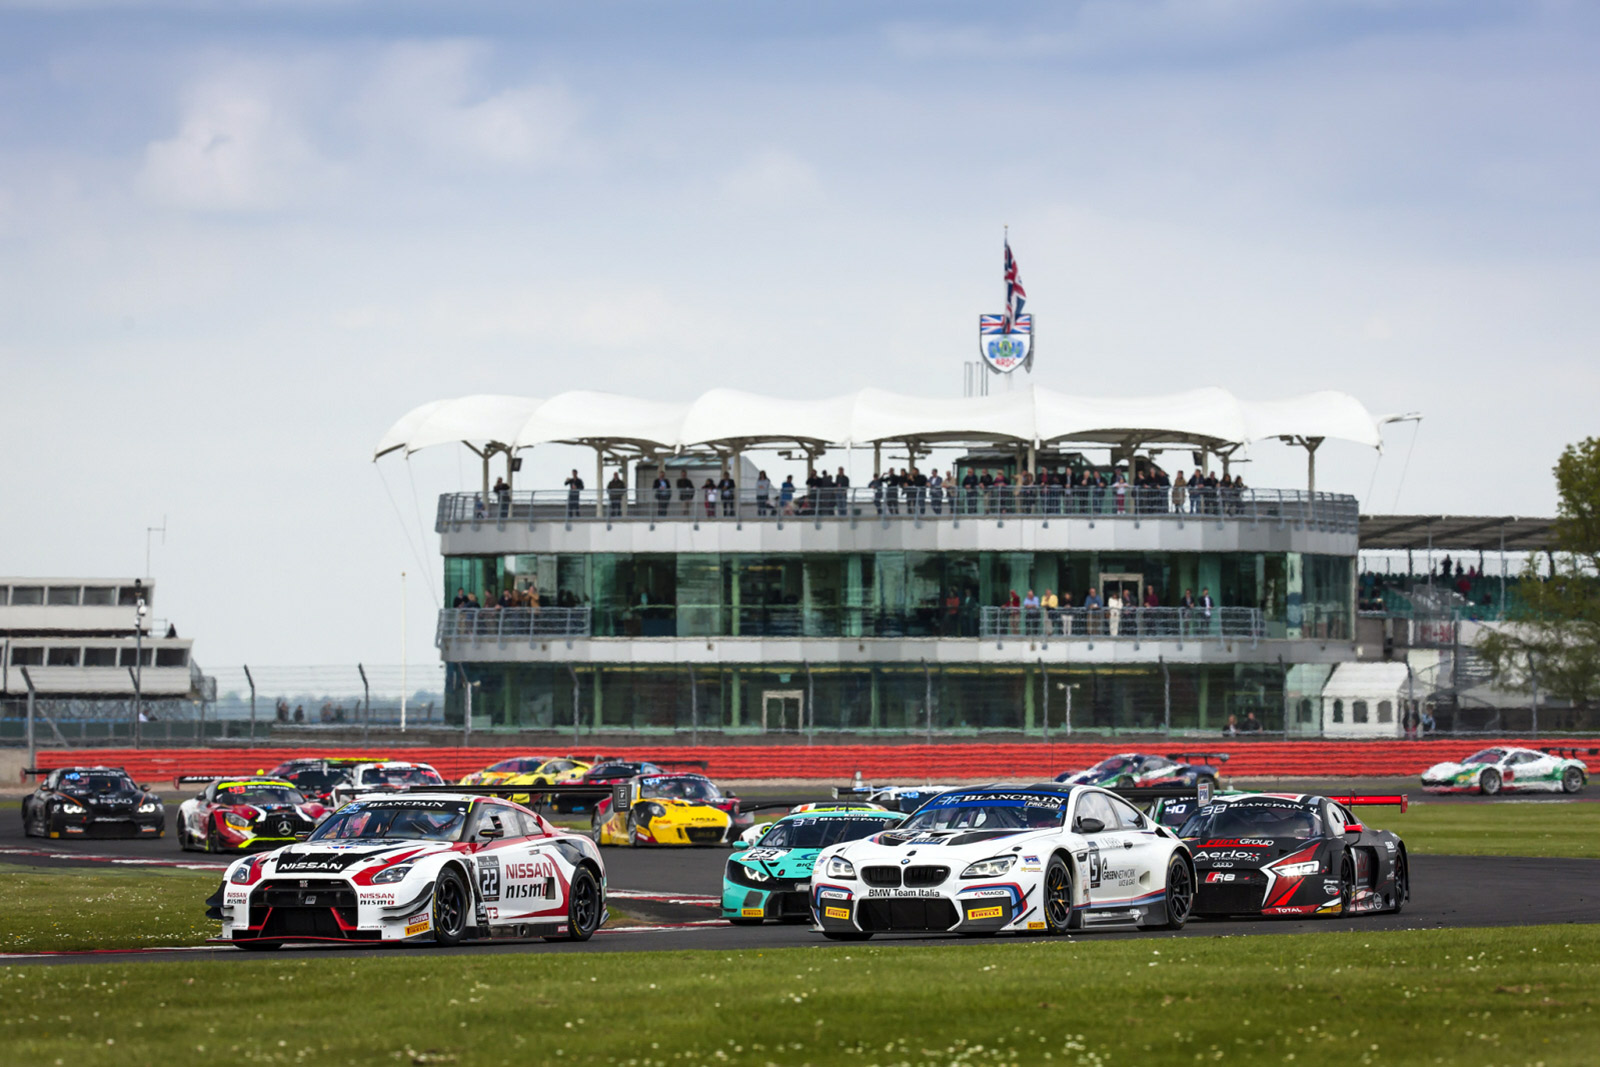 Silverstone performance shows the squad is on the right track.